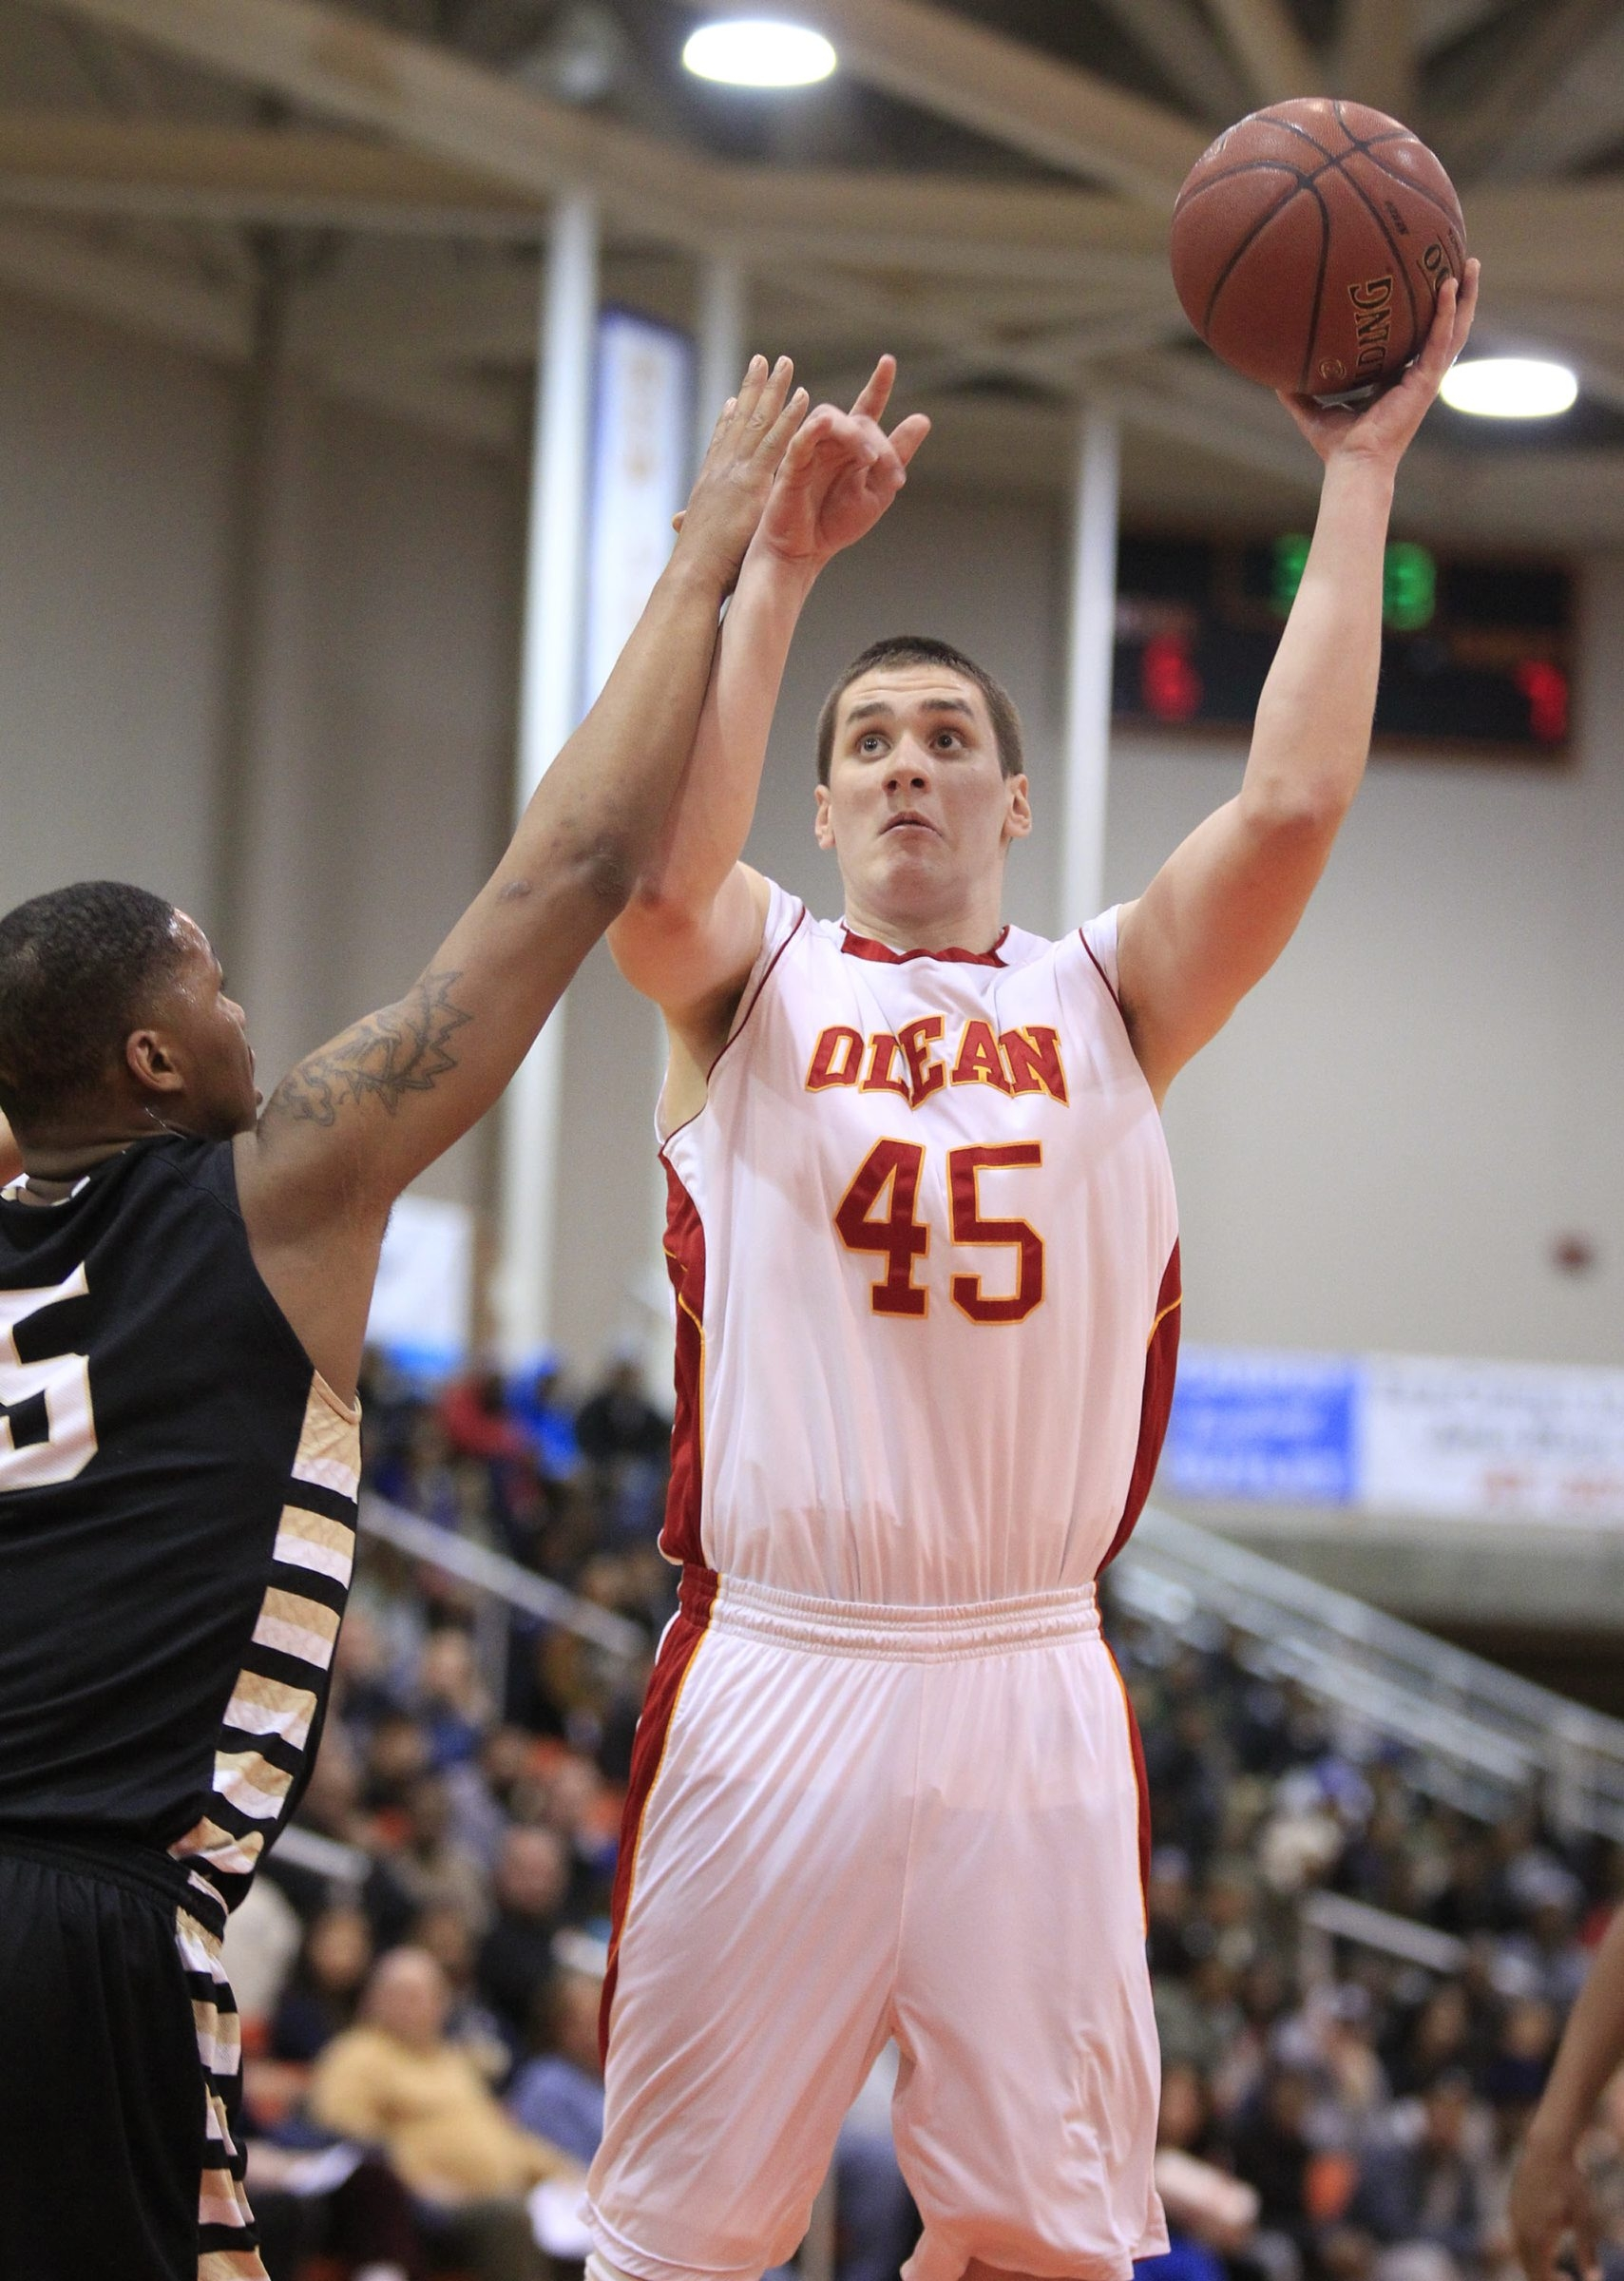 Olean Player,Sam Eckstrom shoots over East player Tyree Tyson (5) in the Class B final at Buffalo State.